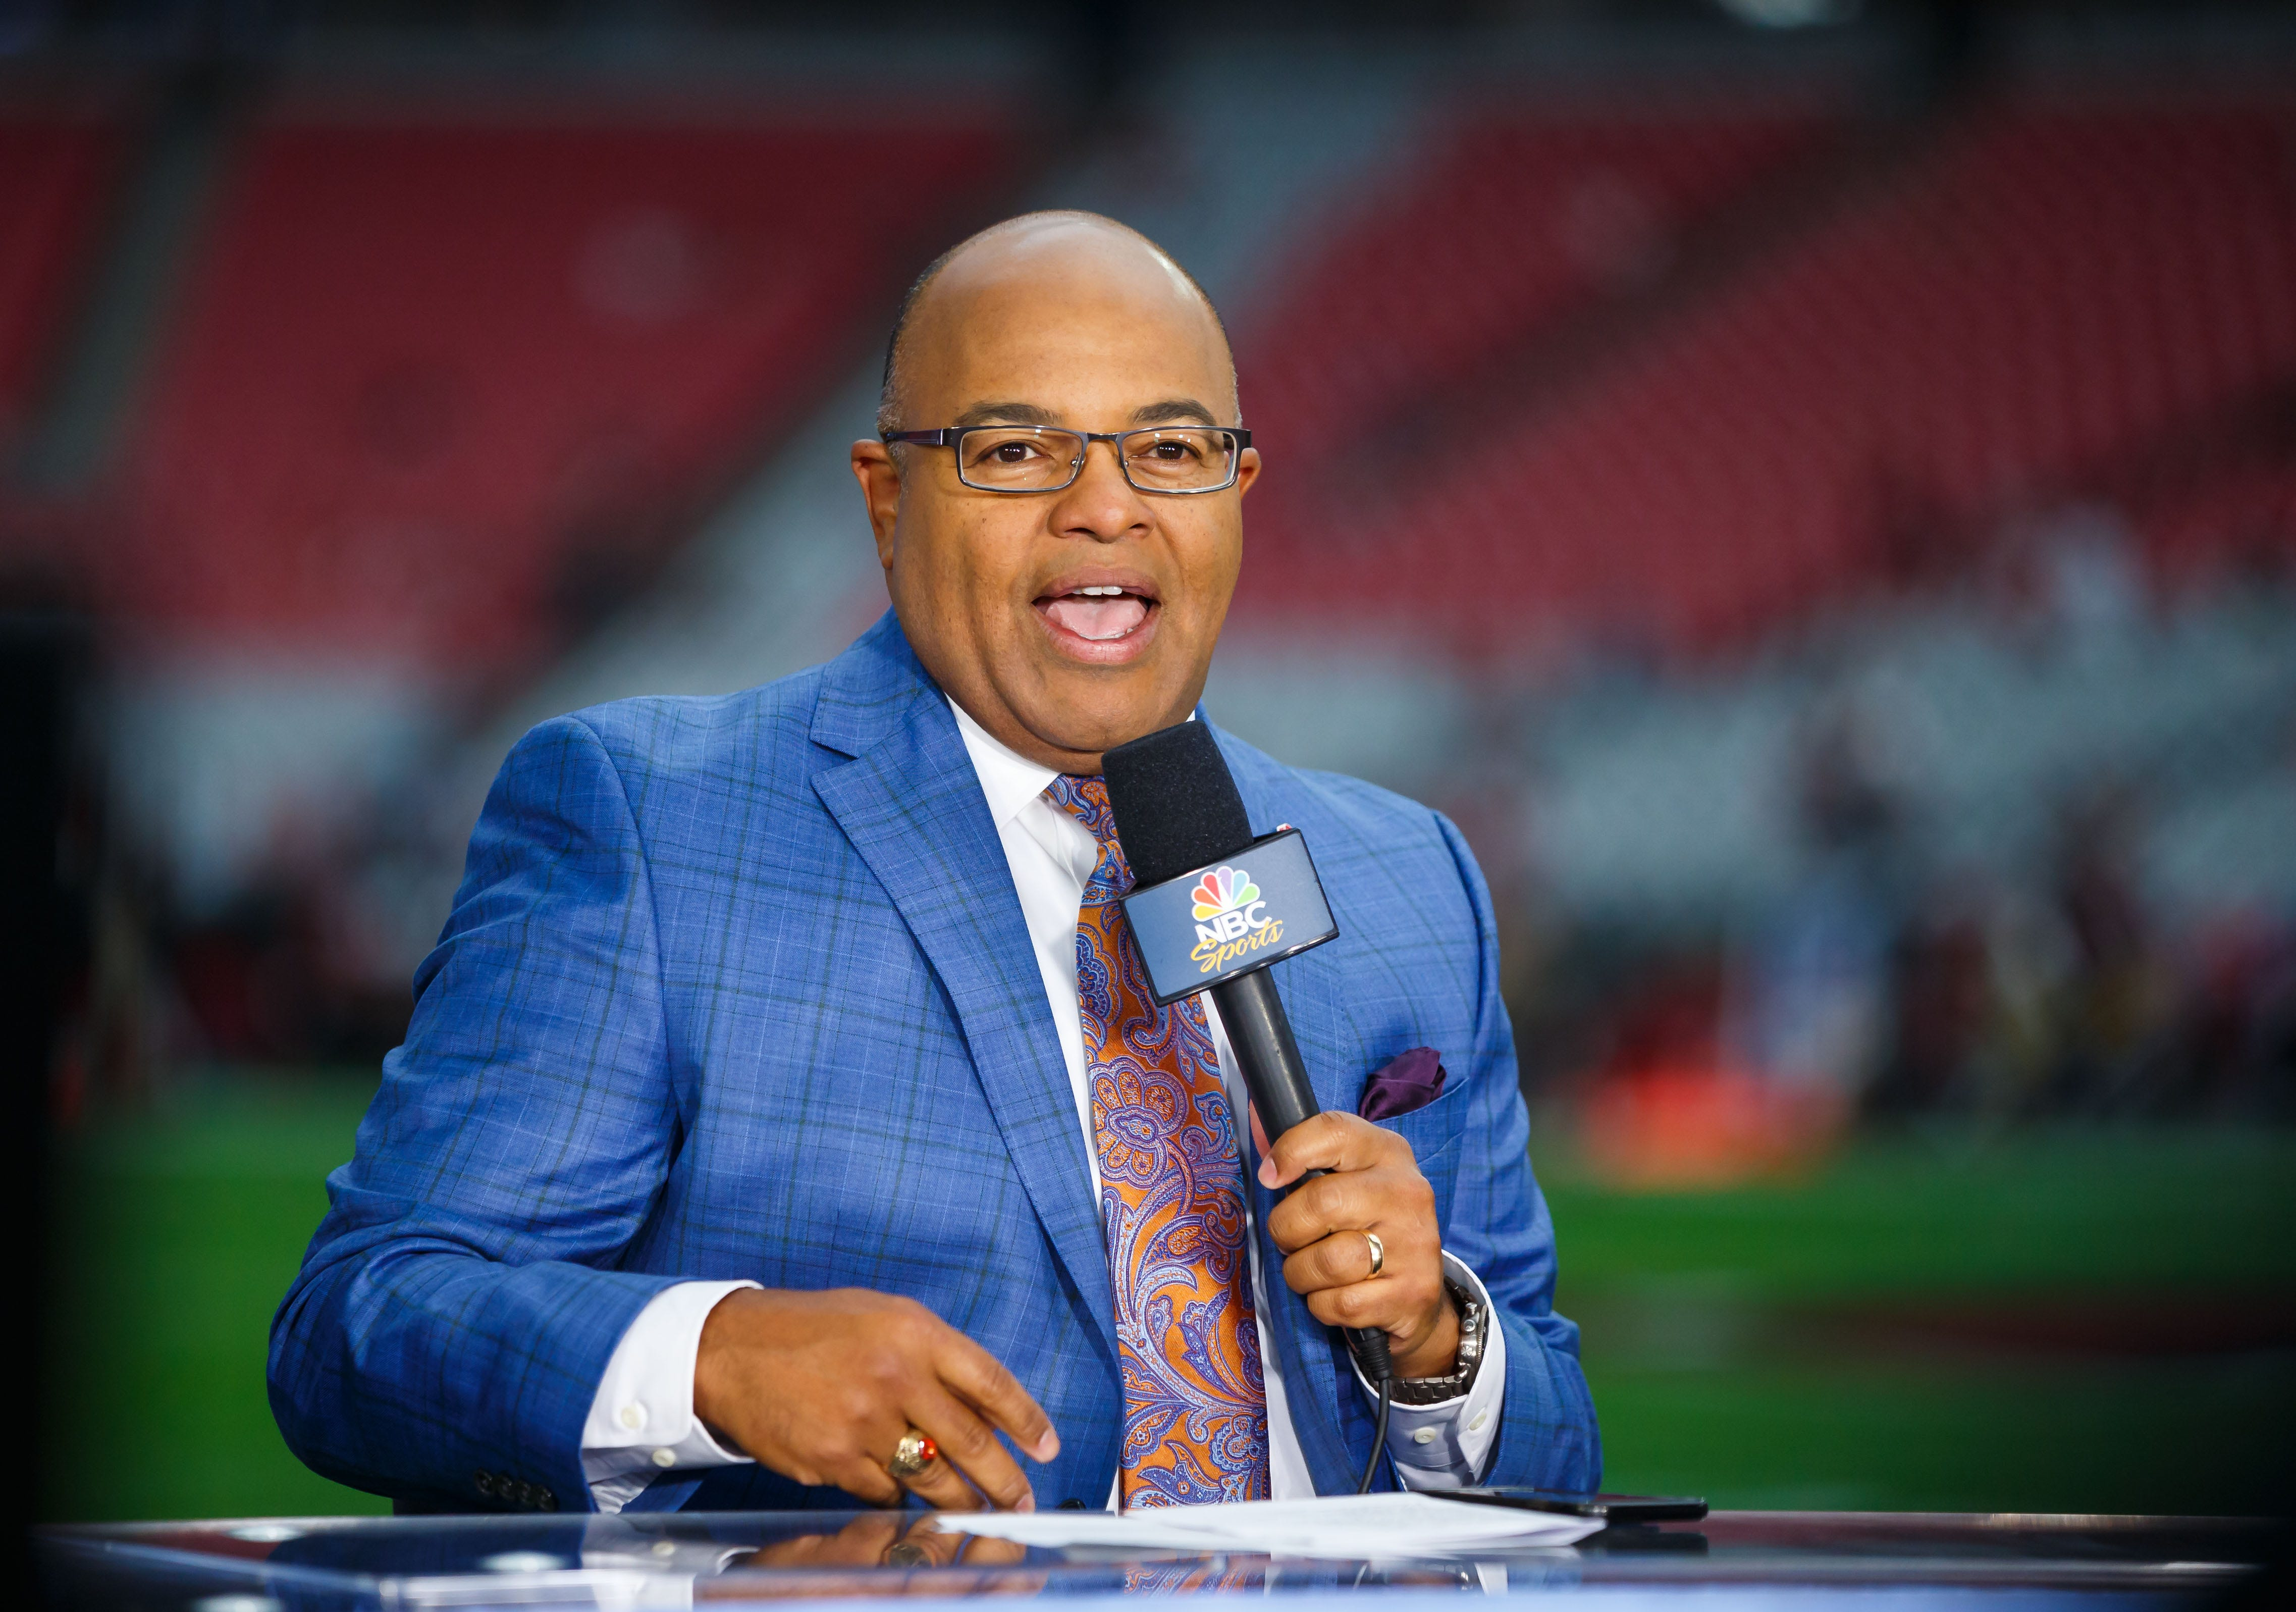 NBC Sports broadcaster Mike Tirico to host NHL's Winter Classic and All-Star Game